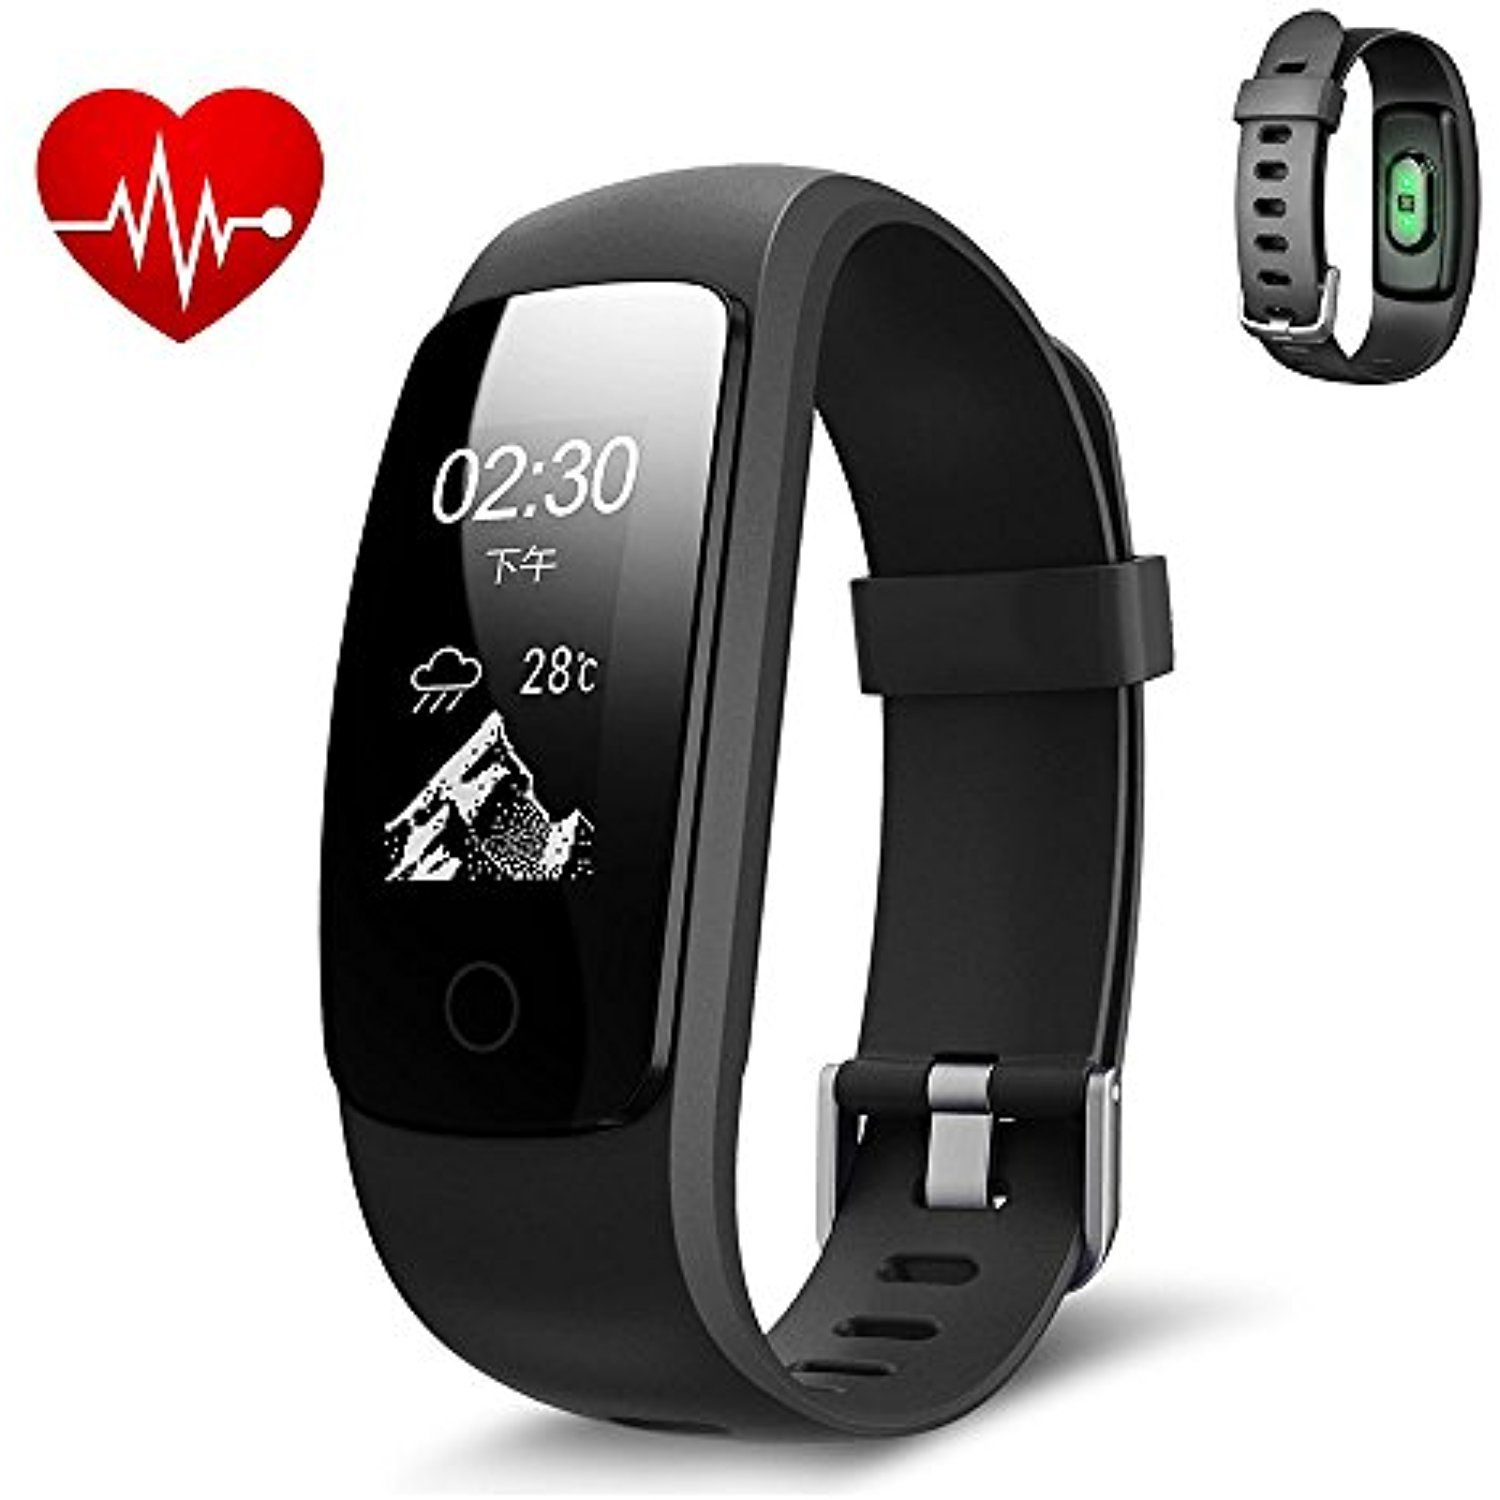 v band reviews vivoactive tracker watches voactive garmin best fitness watch